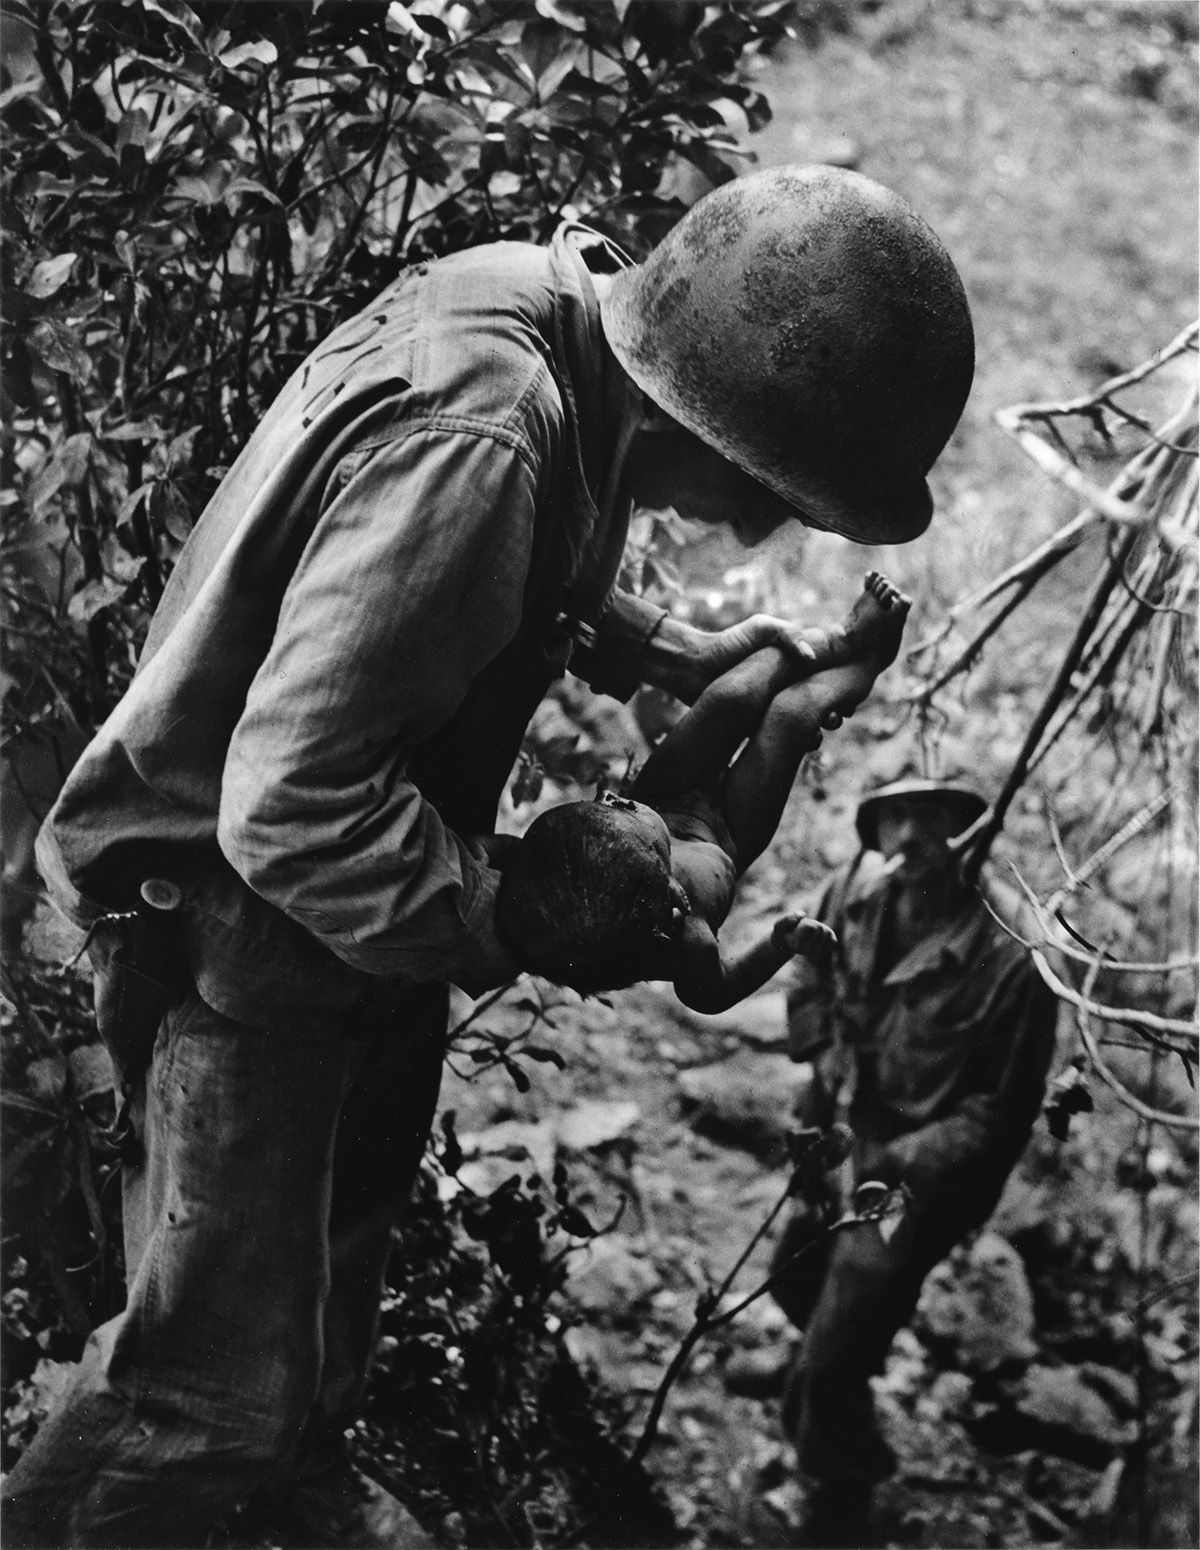 W-EUGENE-SMITH-(1918-1978)-Saipan-(Soldier-with-an-infant)